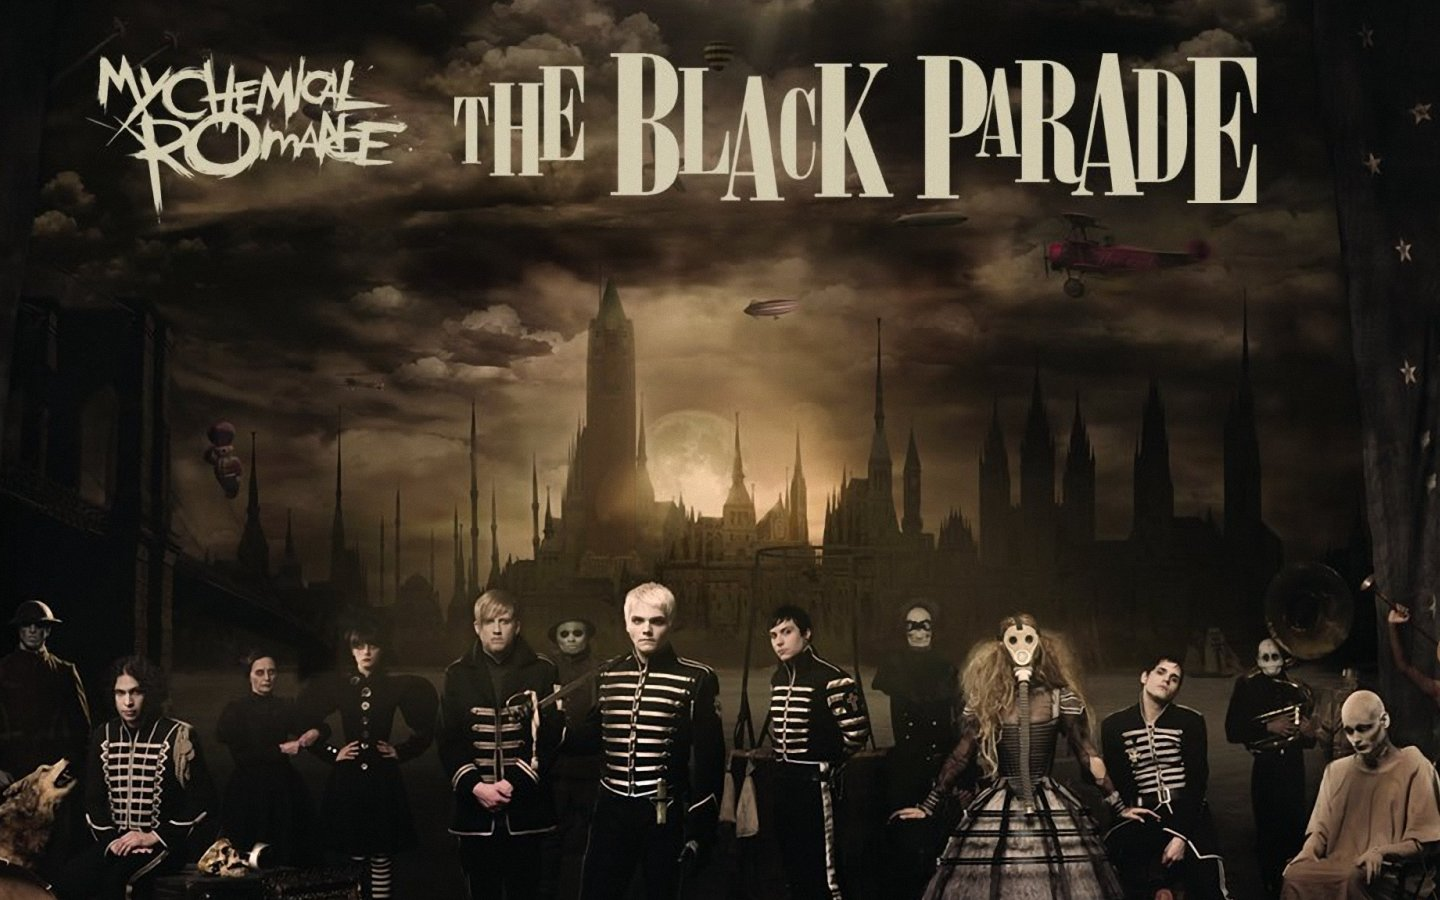 My Chemical Romance Wallpaper 1440x900 Wallpapers 1440x900 Wallpapers 1440x900